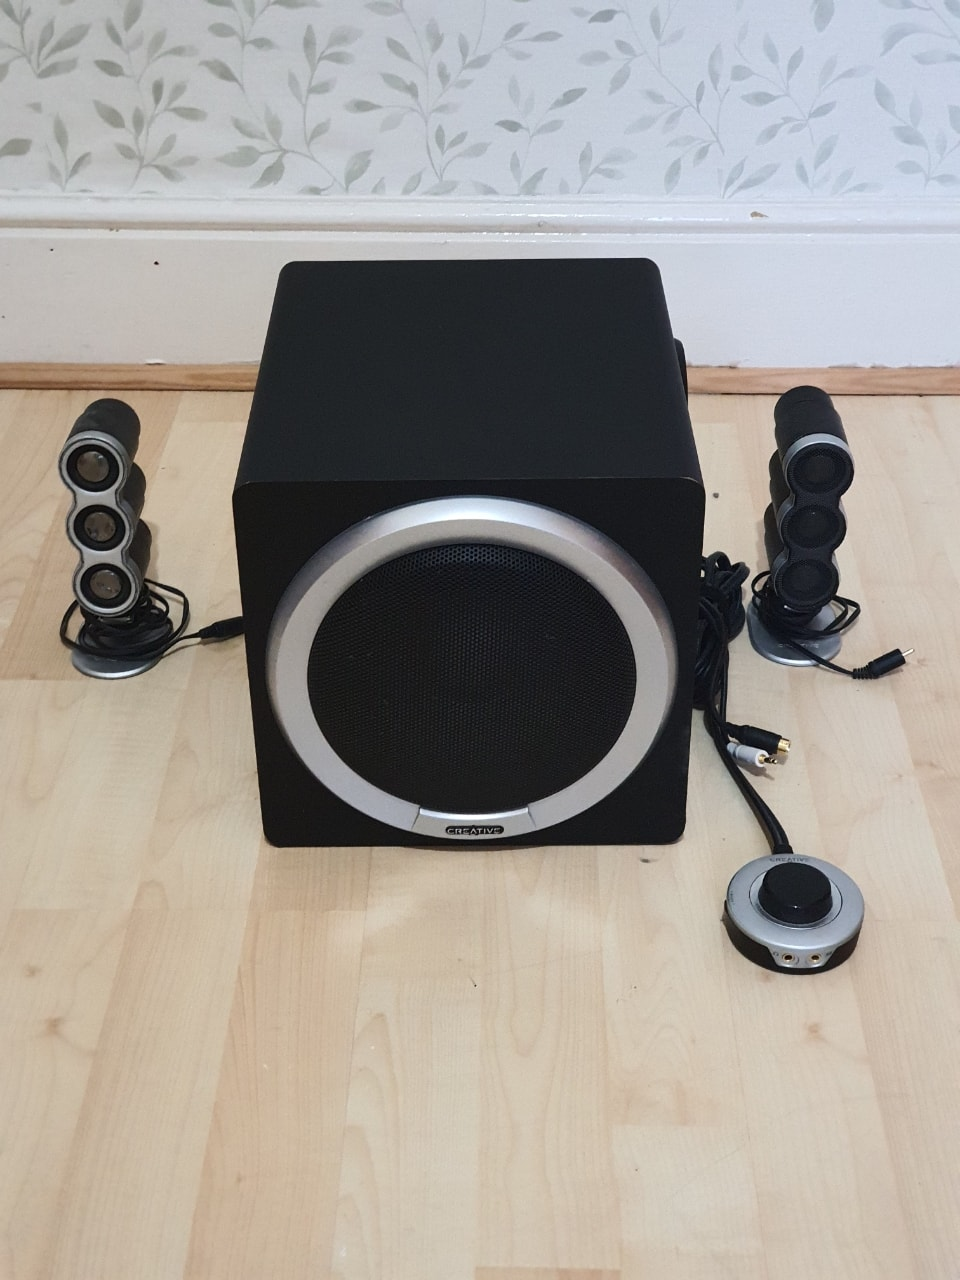 Creative iTrigue 5600 PC speakers